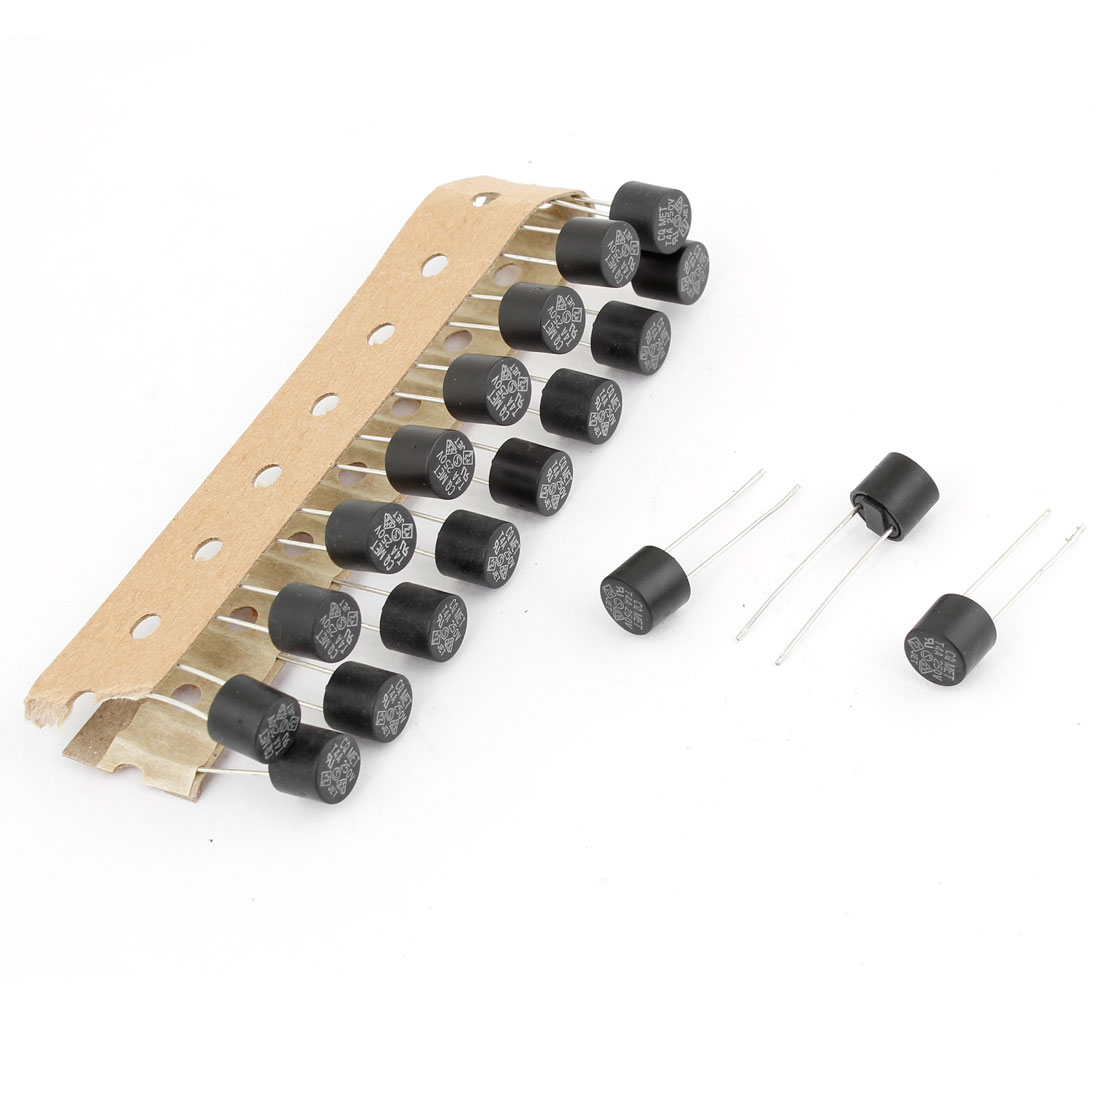 20Pcs 250V 4A DIP Mounted Slow Blow Miniature Micro Fuses 8x8mm